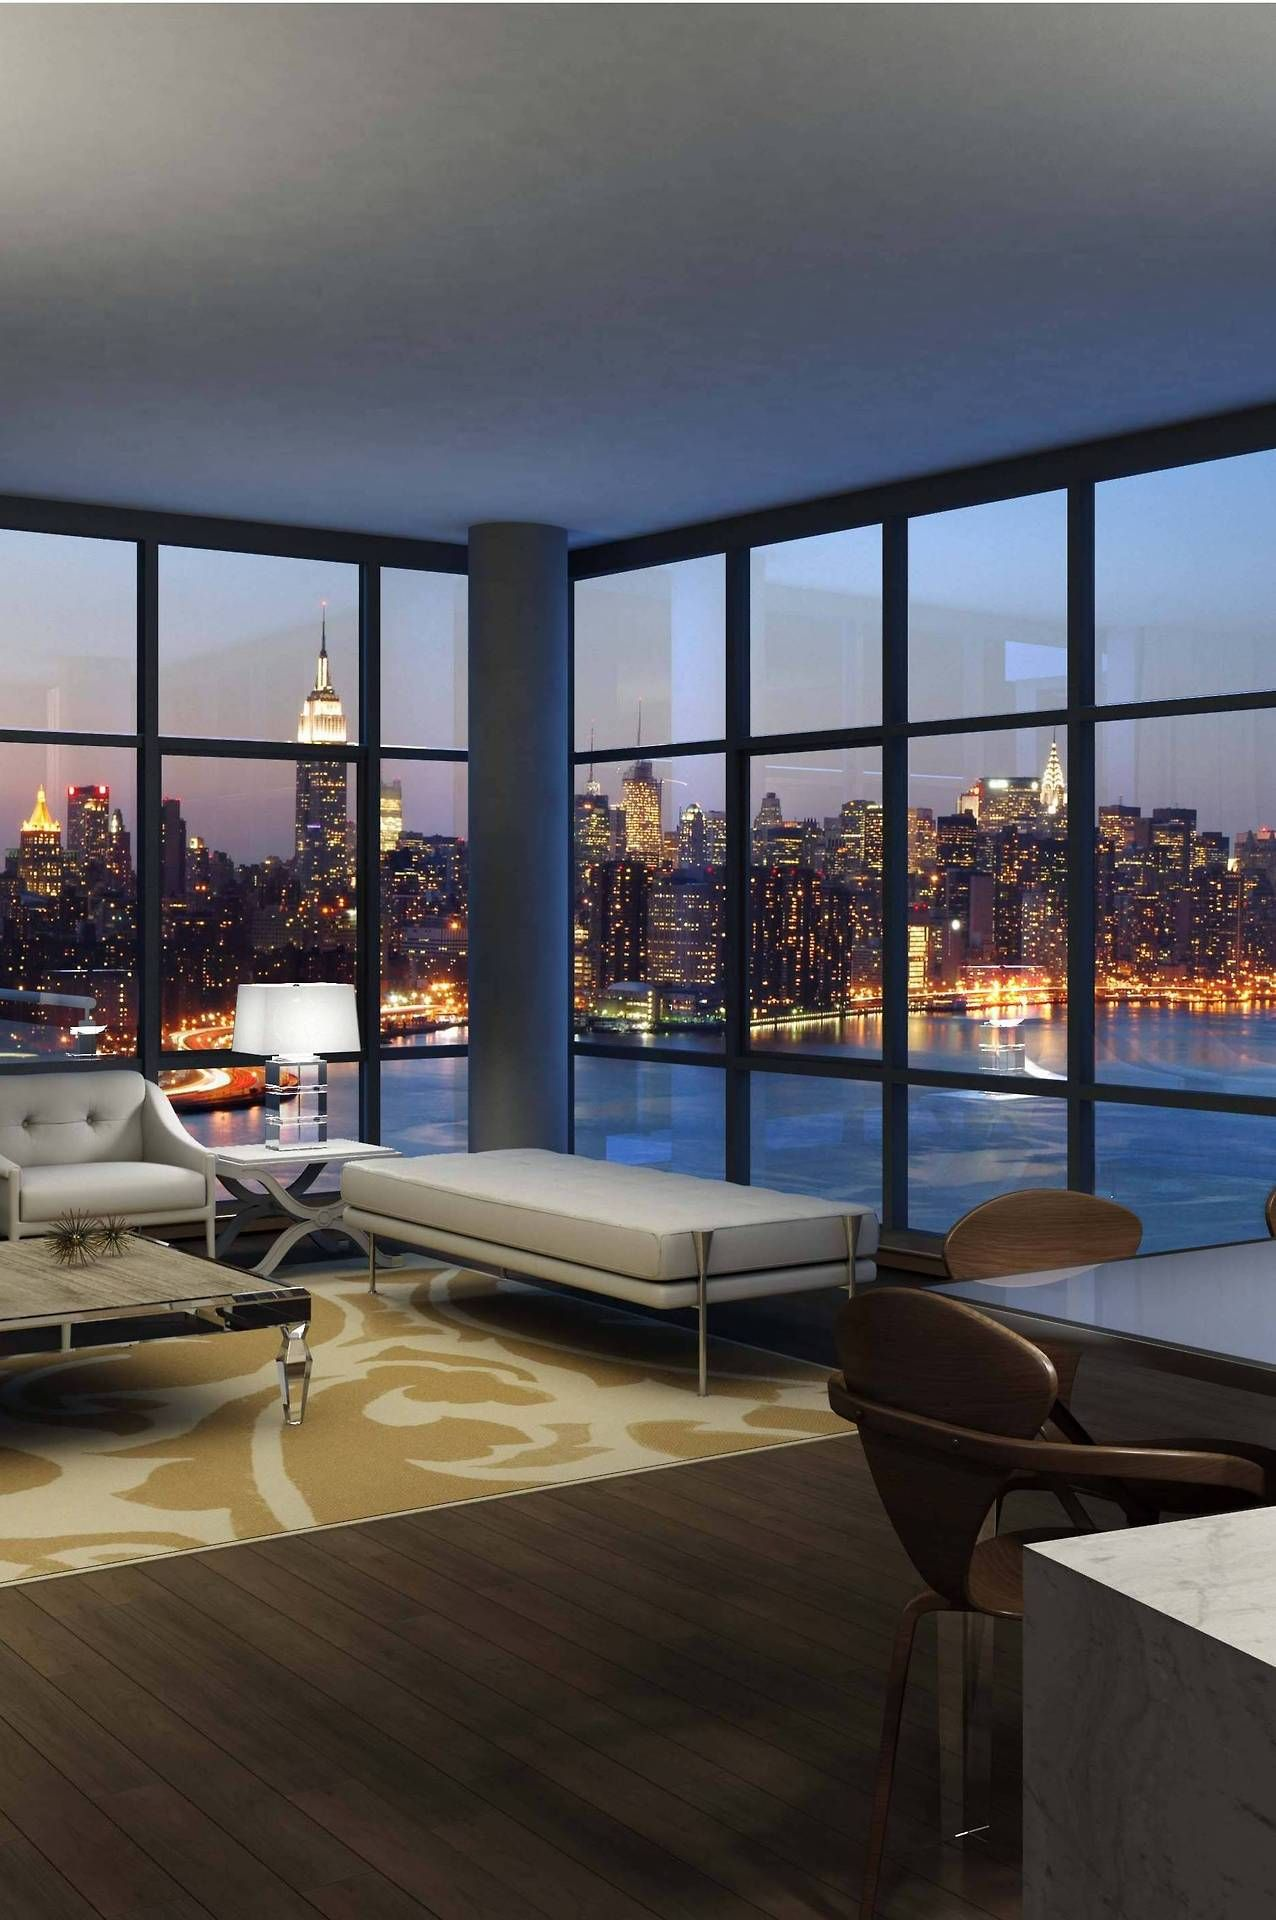 Floor To Ceiling Windows With A Bright Panoramic View I Love My Newyork Apartment My Dream Home Penthouse Living Dream Apartment